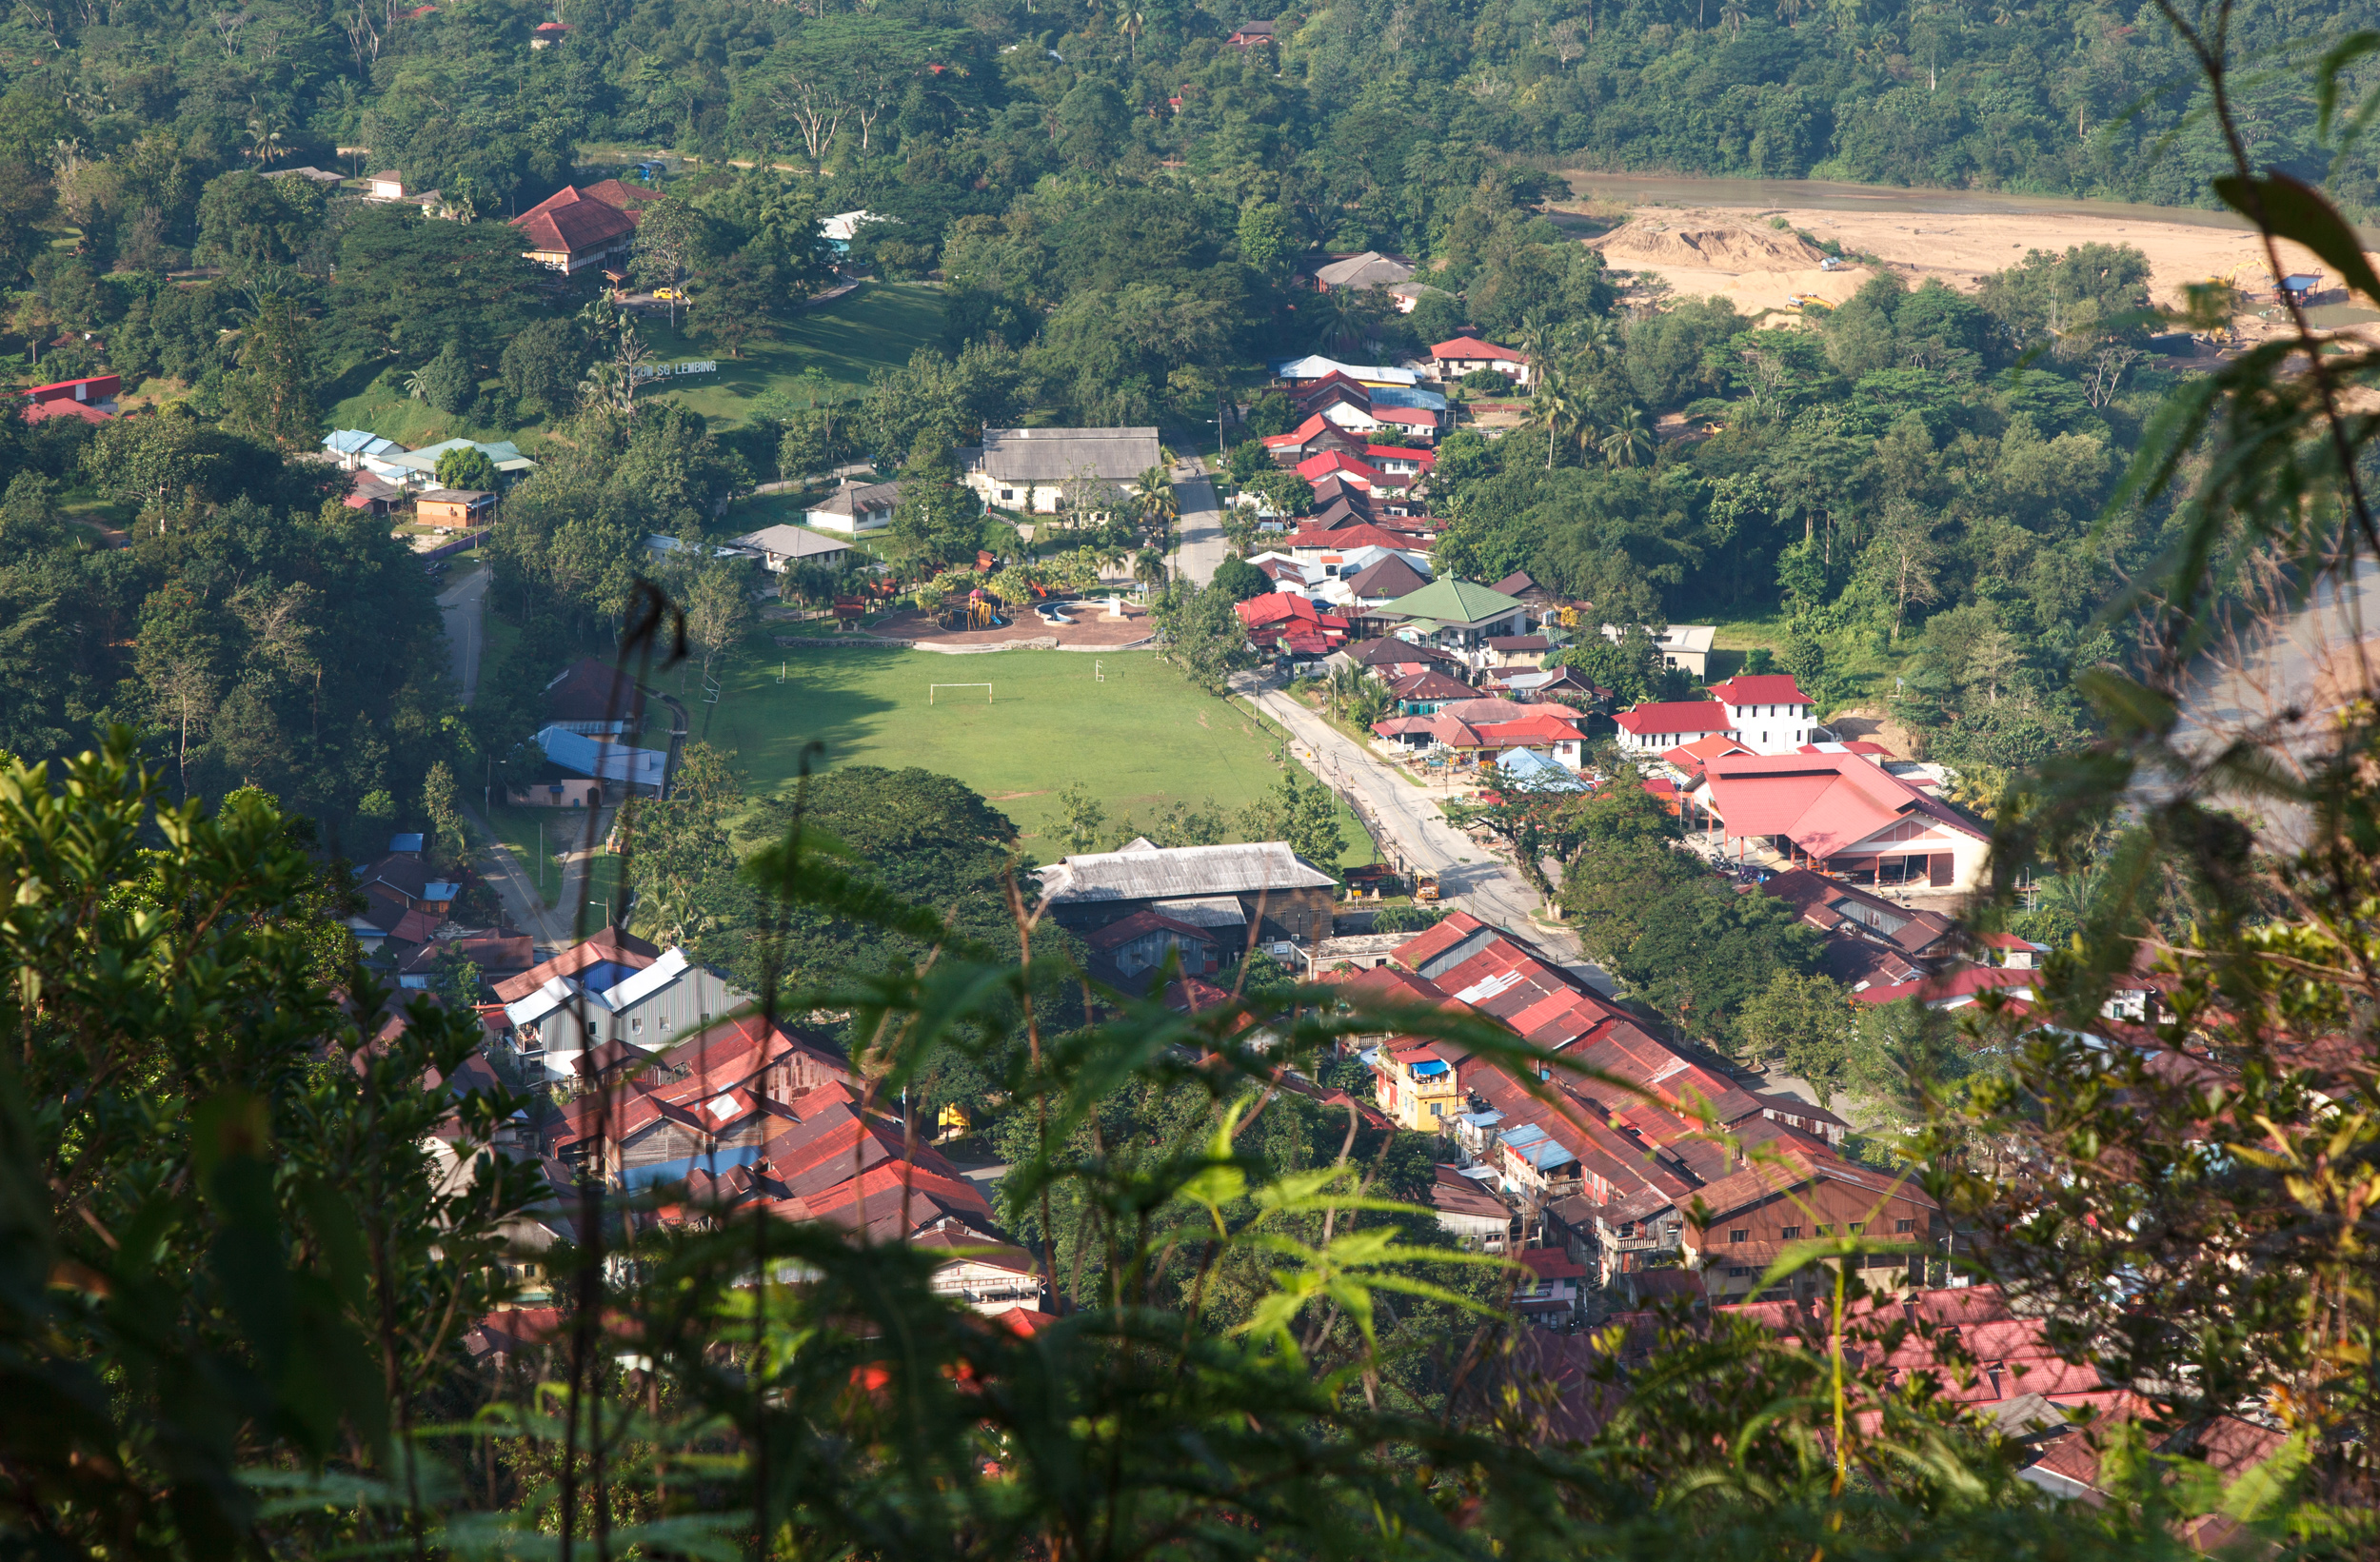 Sungai Lembing captured from the stairs of Panorama Hill.